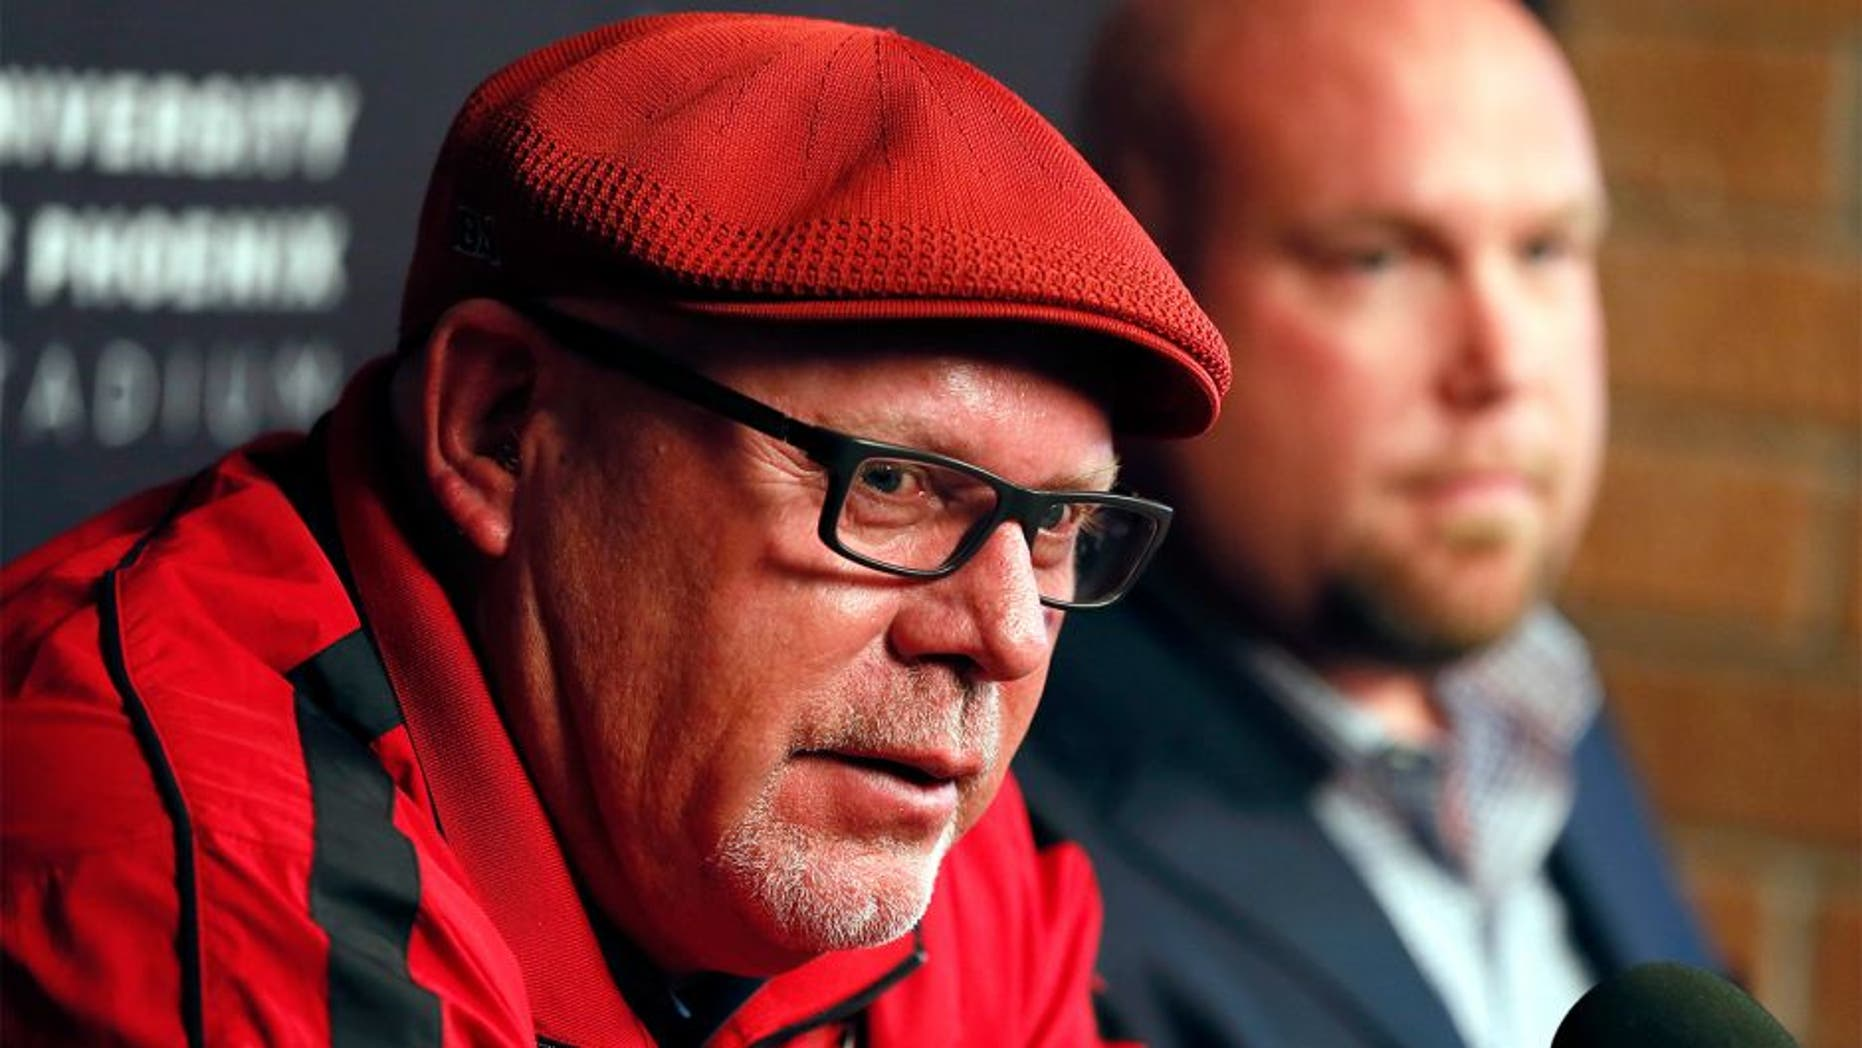 Arizona Cardinals head coach Bruce Arians, left, and general manager Steve Keim speak during a news conference Tuesday, Feb. 24, 2015, in Tempe, Ariz. Both Keim and Arians were given contract extensions after their successful 2014 season. (AP Photo/Matt York)